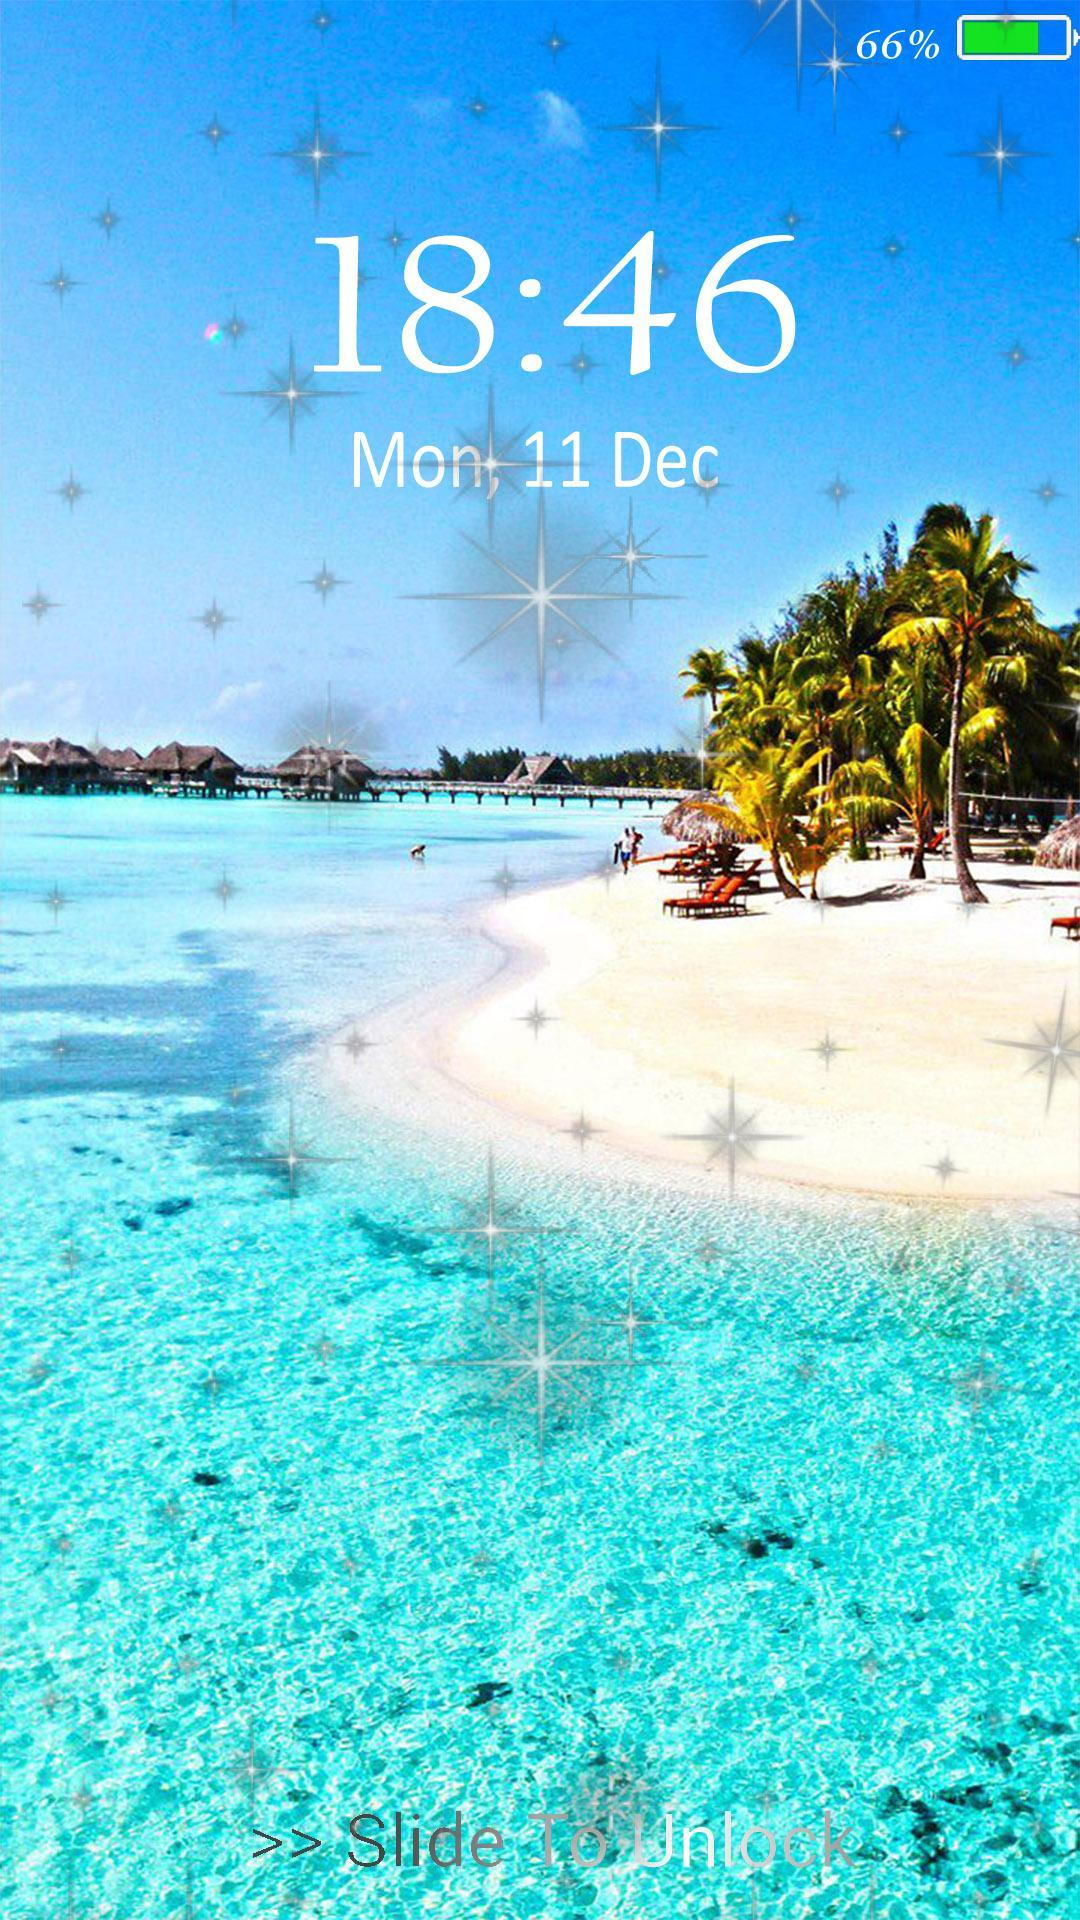 Beach Live Wallpaper Lock Screen For Android Apk Download